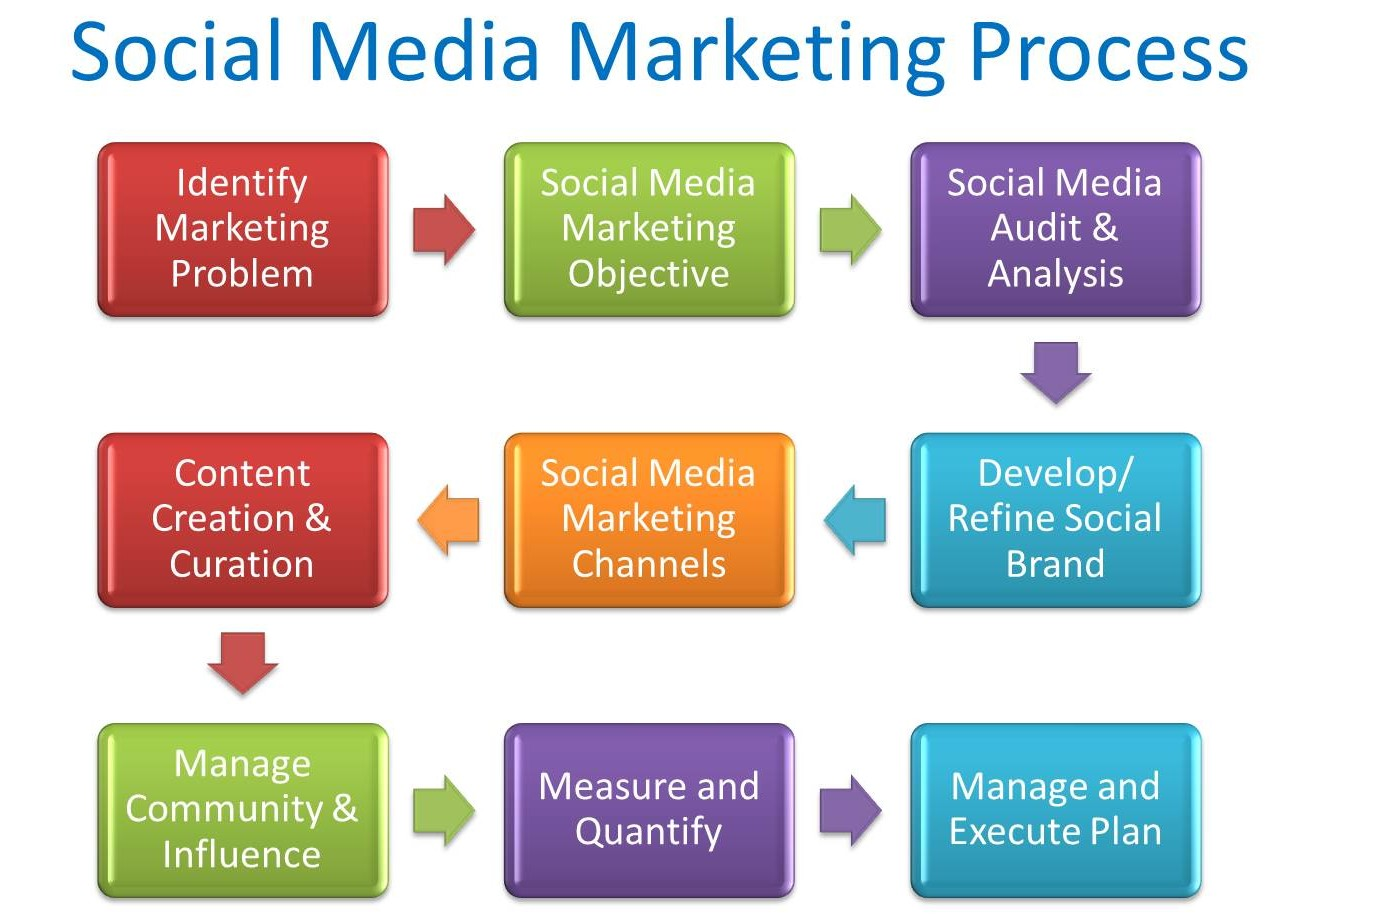 Social-Media-Marketing-Plans-An-Easy-9-Step-Process-e1457354609888.jpg